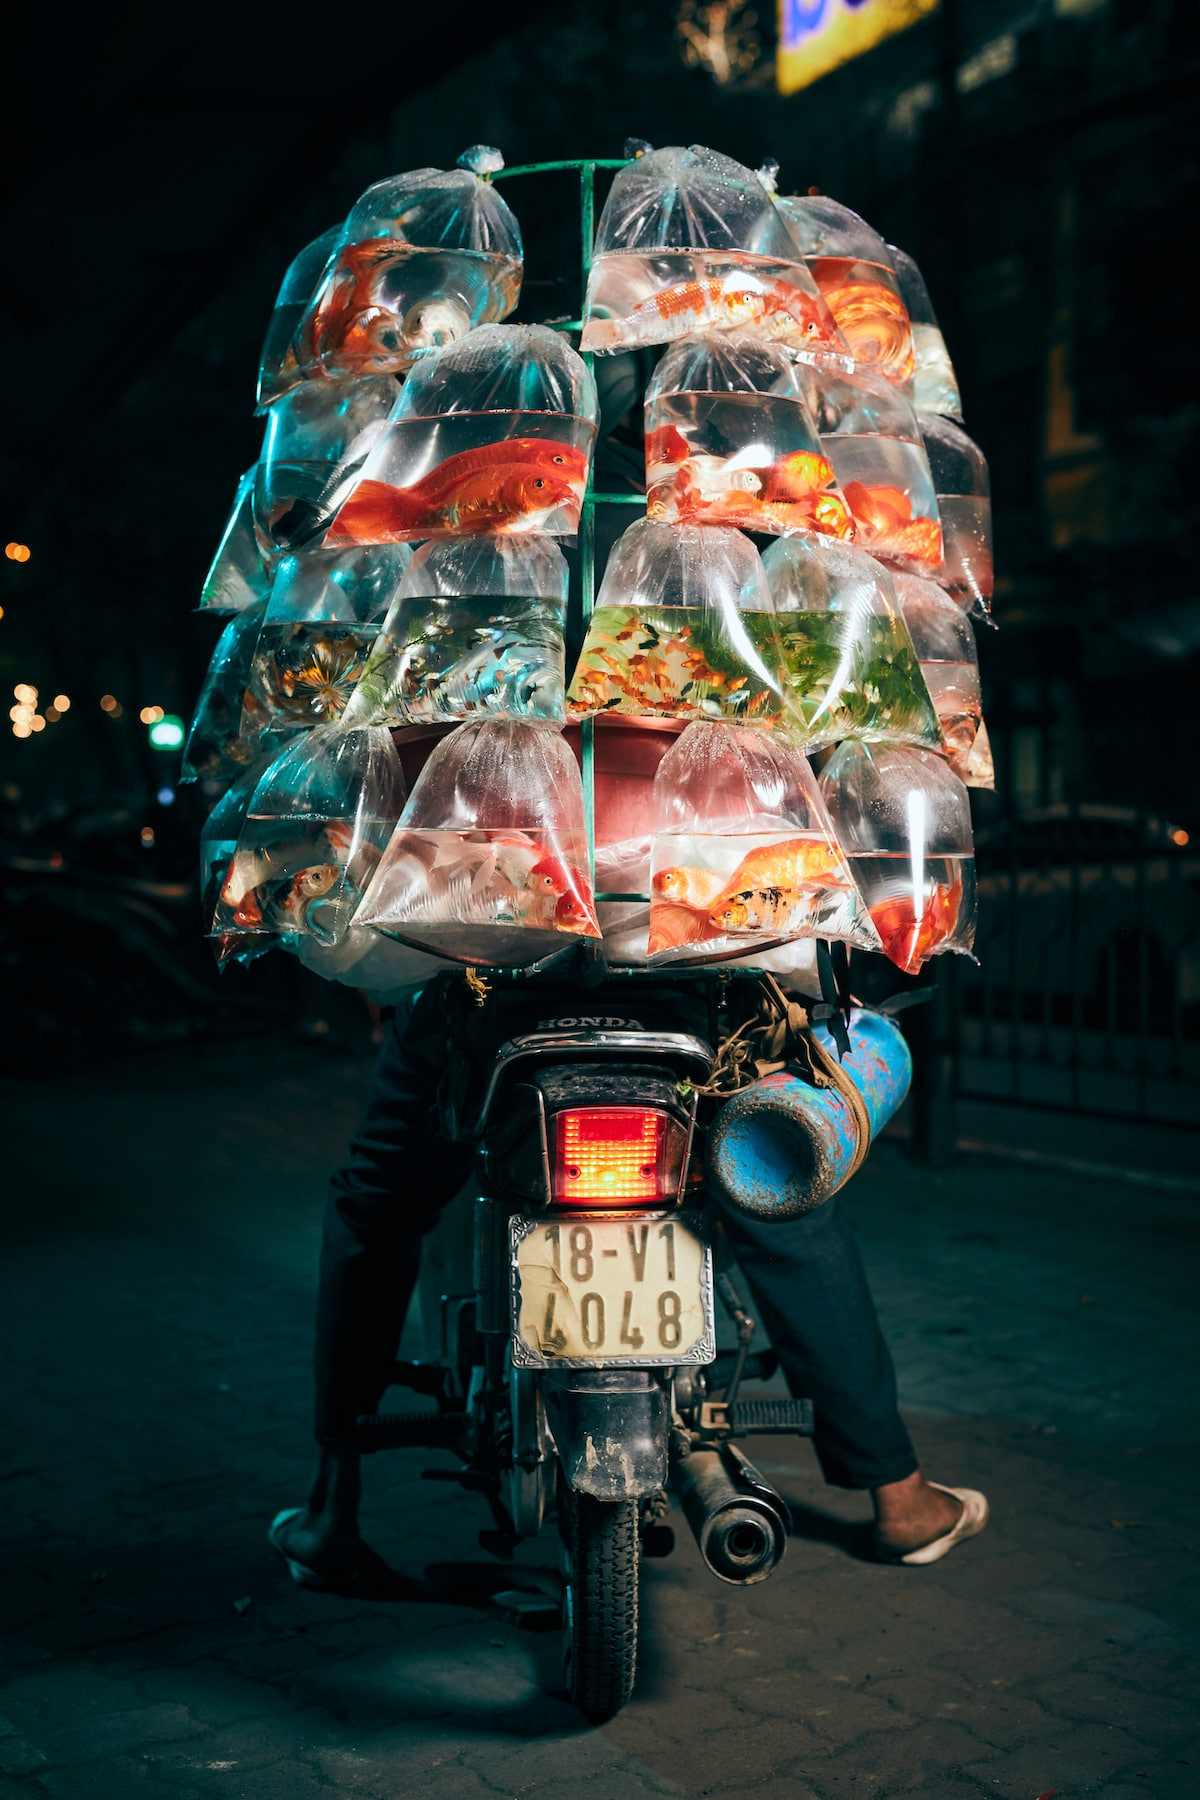 Fish Vendor in Hanoi on His Motorcycle